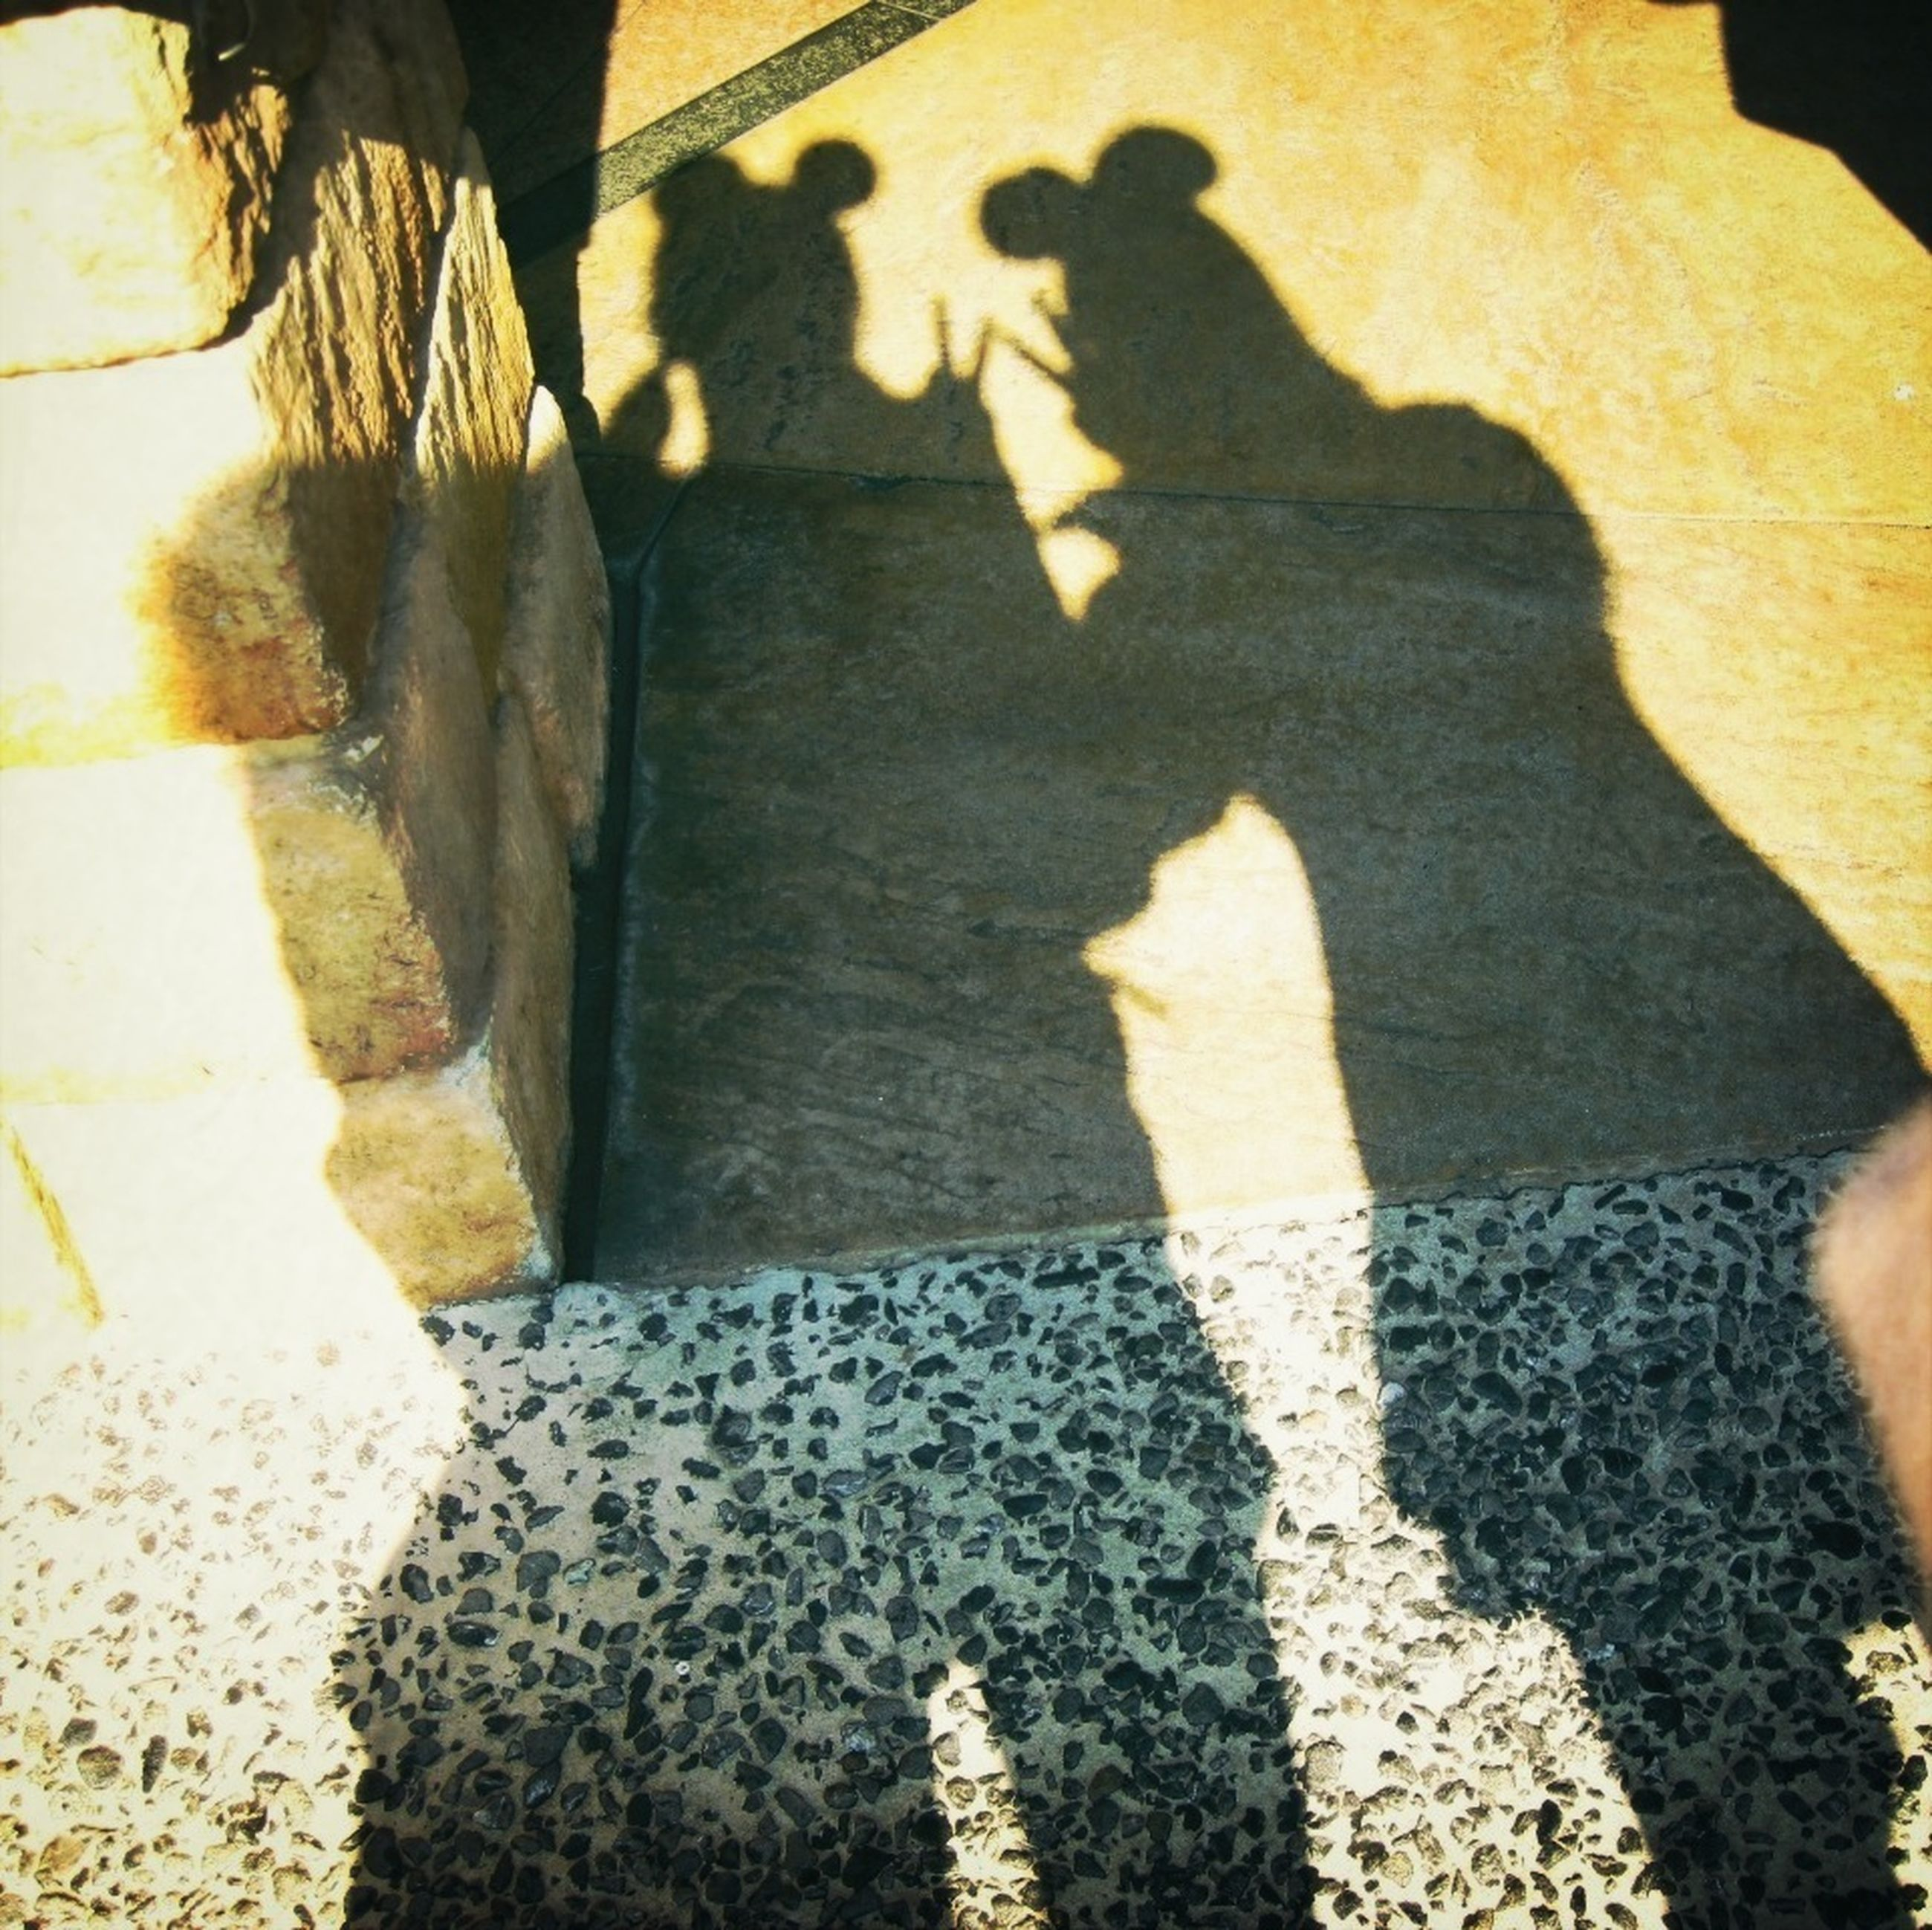 shadow, lifestyles, low section, men, high angle view, leisure activity, sunlight, togetherness, person, focus on shadow, standing, walking, street, unrecognizable person, bonding